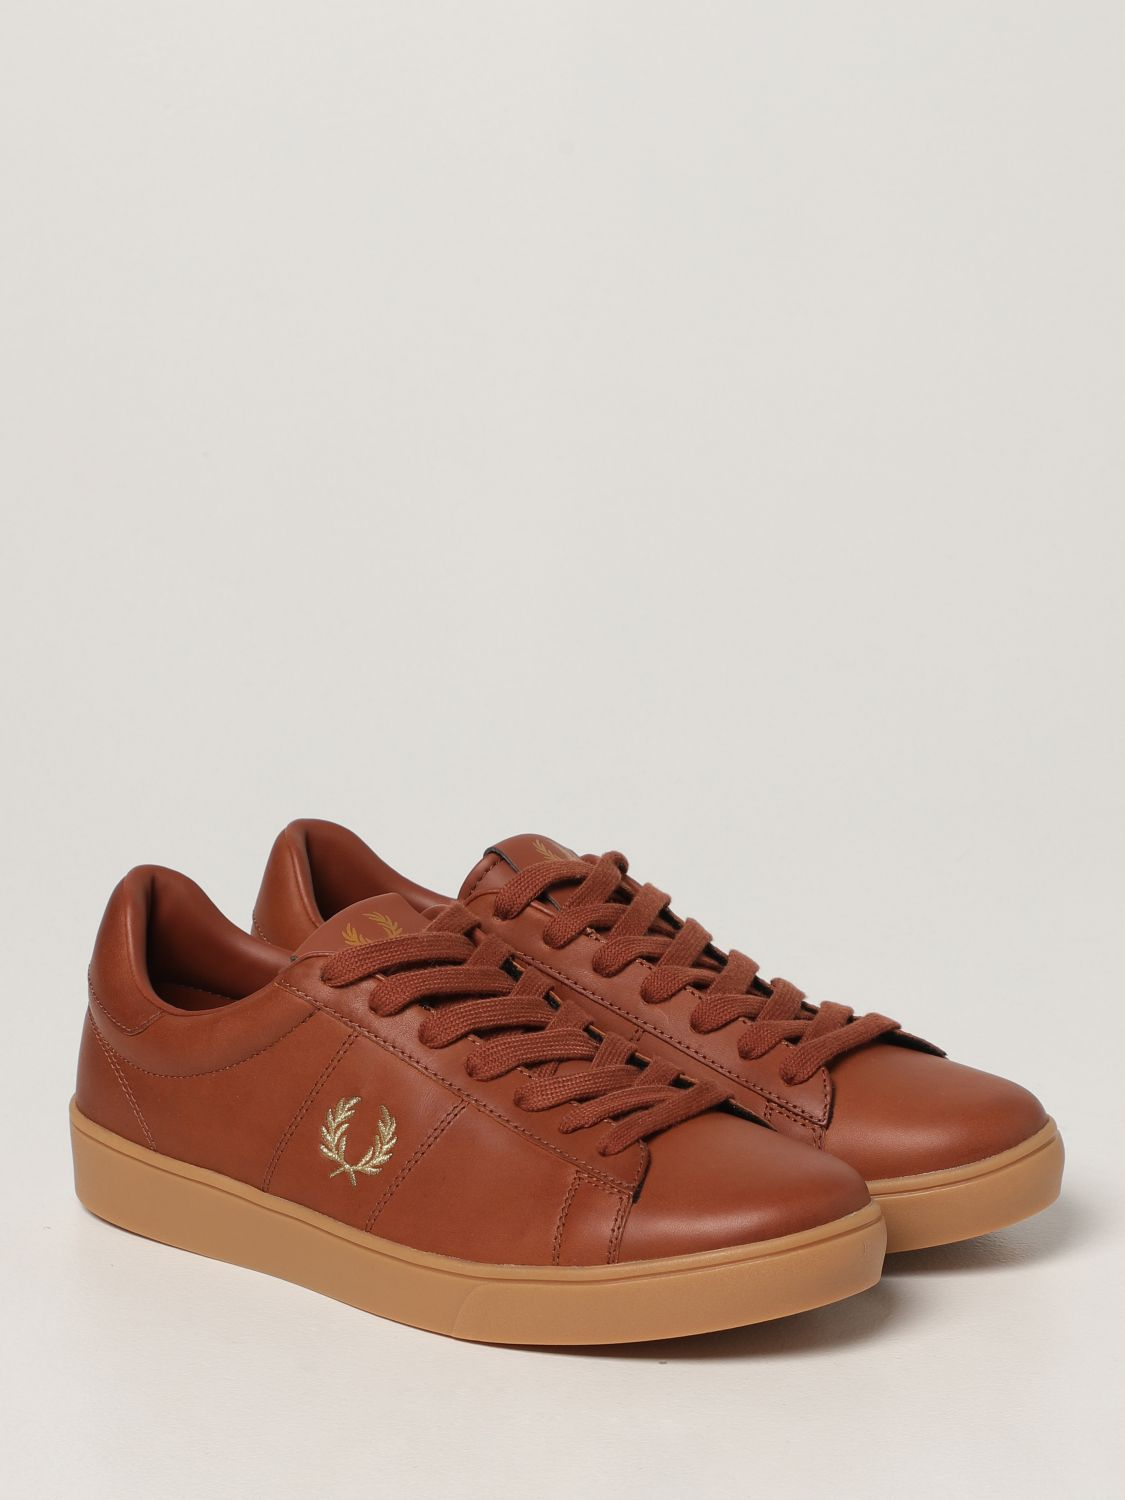 Zapatillas Fred Perry: Zapatillas hombre Fred Perry bronce 2